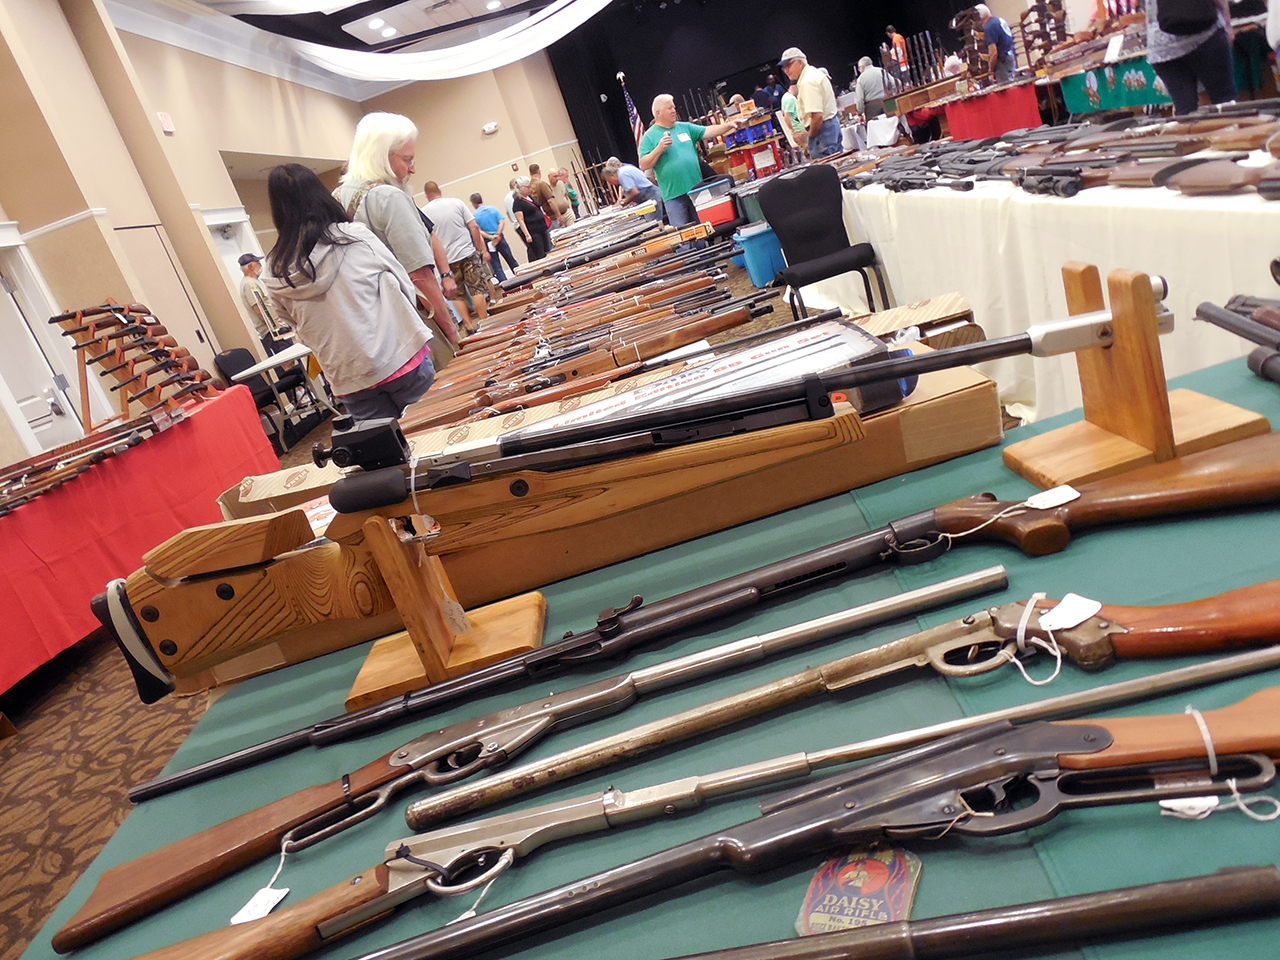 2017 Airgun Show Wrap-Up